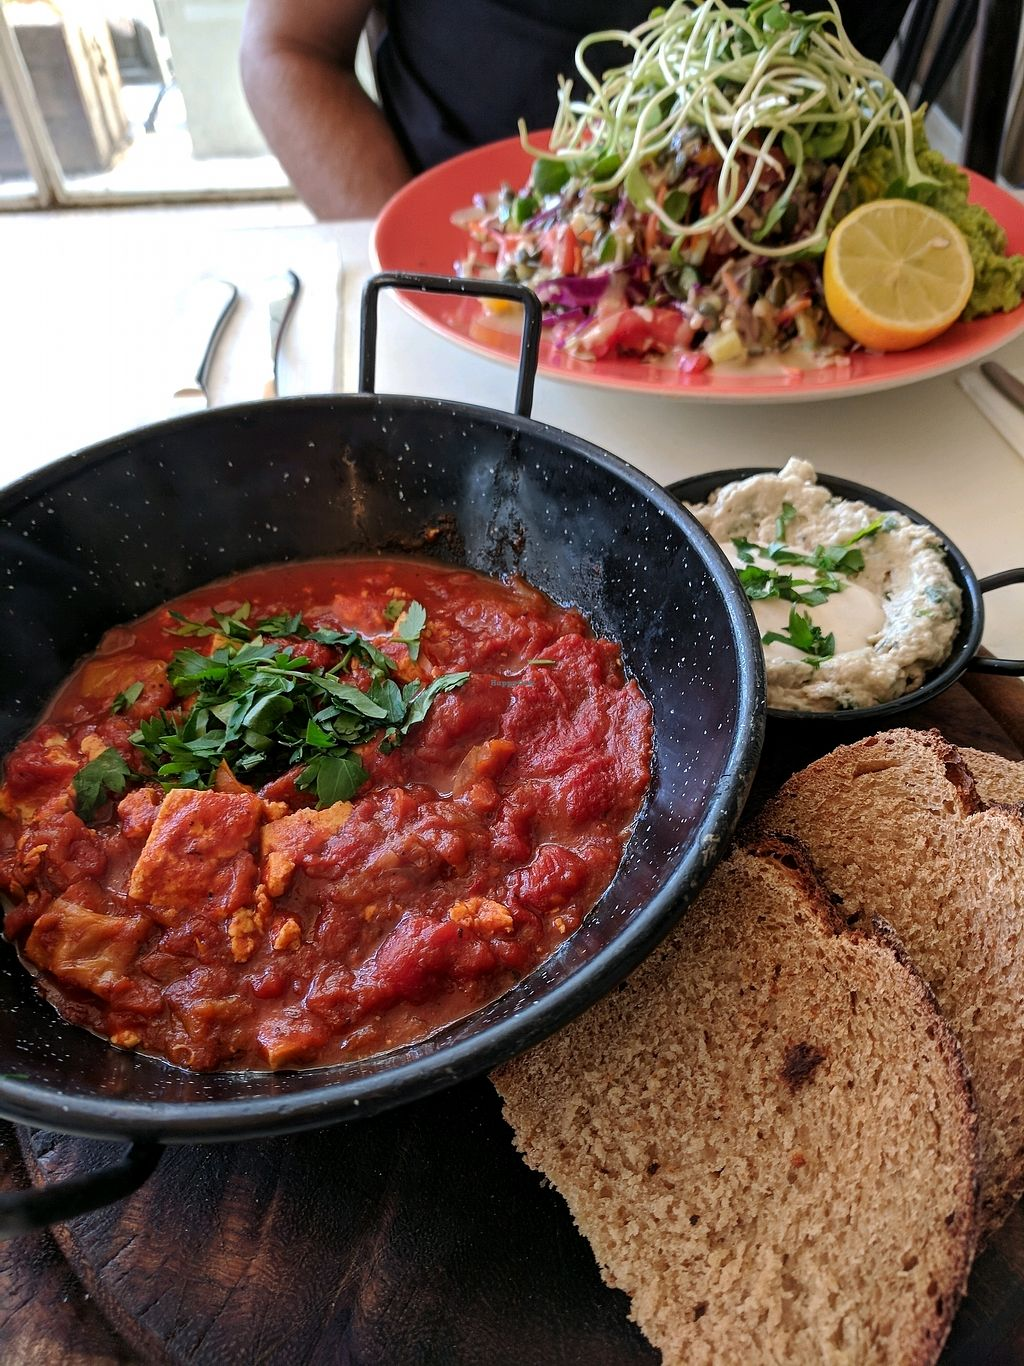 """Photo of Meshek Barzilay Deli  by <a href=""""/members/profile/NJ220"""">NJ220</a> <br/>Shakshuka and the Israeli salad. Both great <br/> February 28, 2018  - <a href='/contact/abuse/image/109391/364774'>Report</a>"""